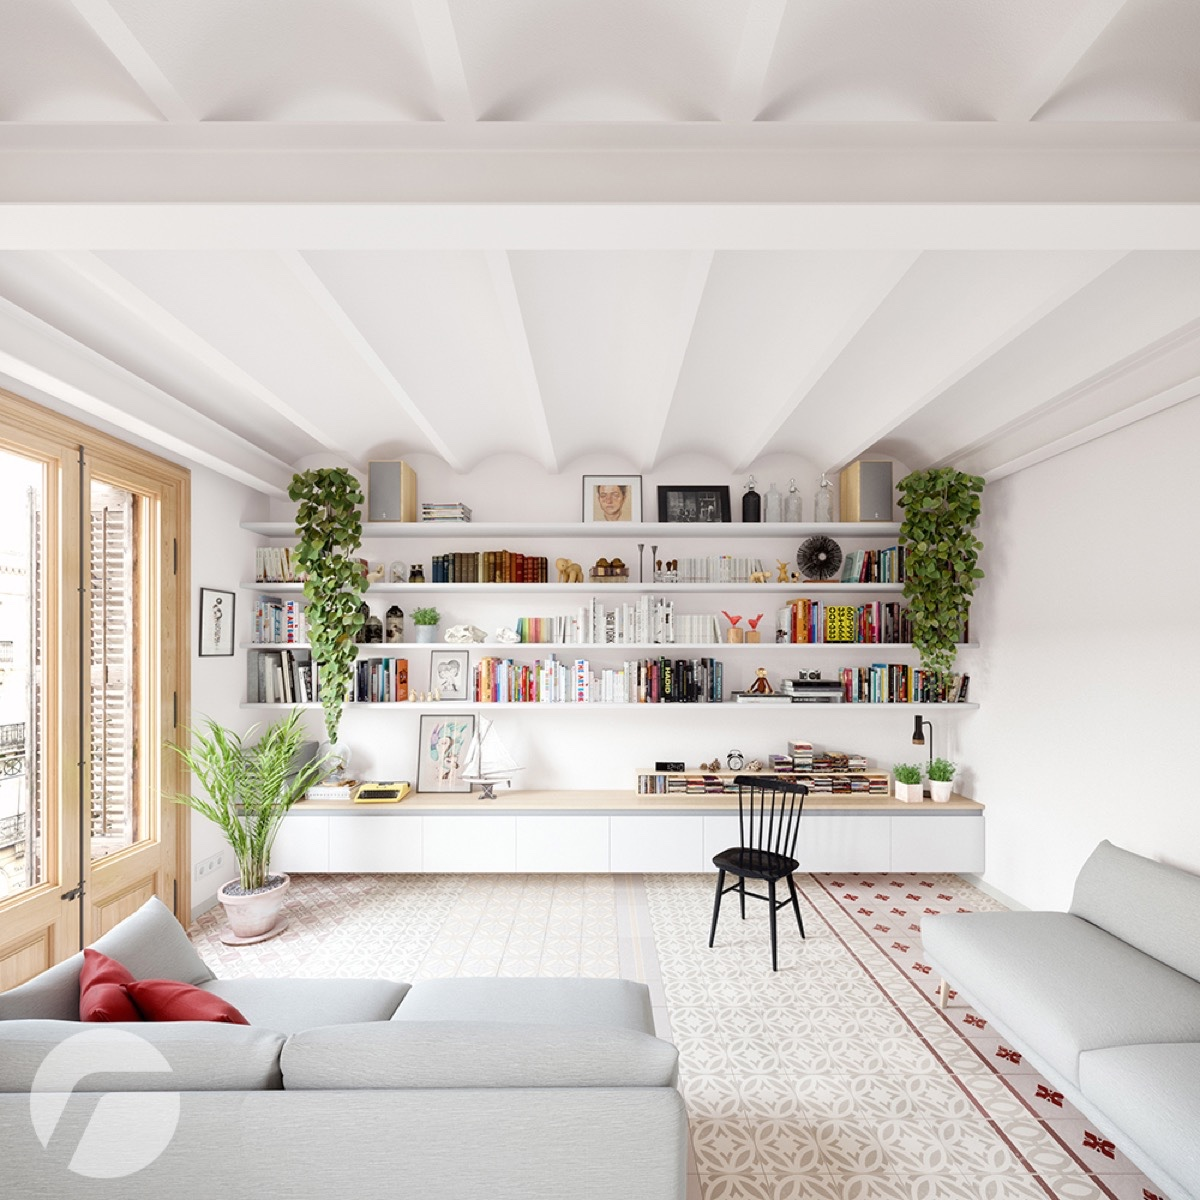 Interior Design Ideas For Home: 10 Stunning Apartments That Show Off The Beauty Of Nordic